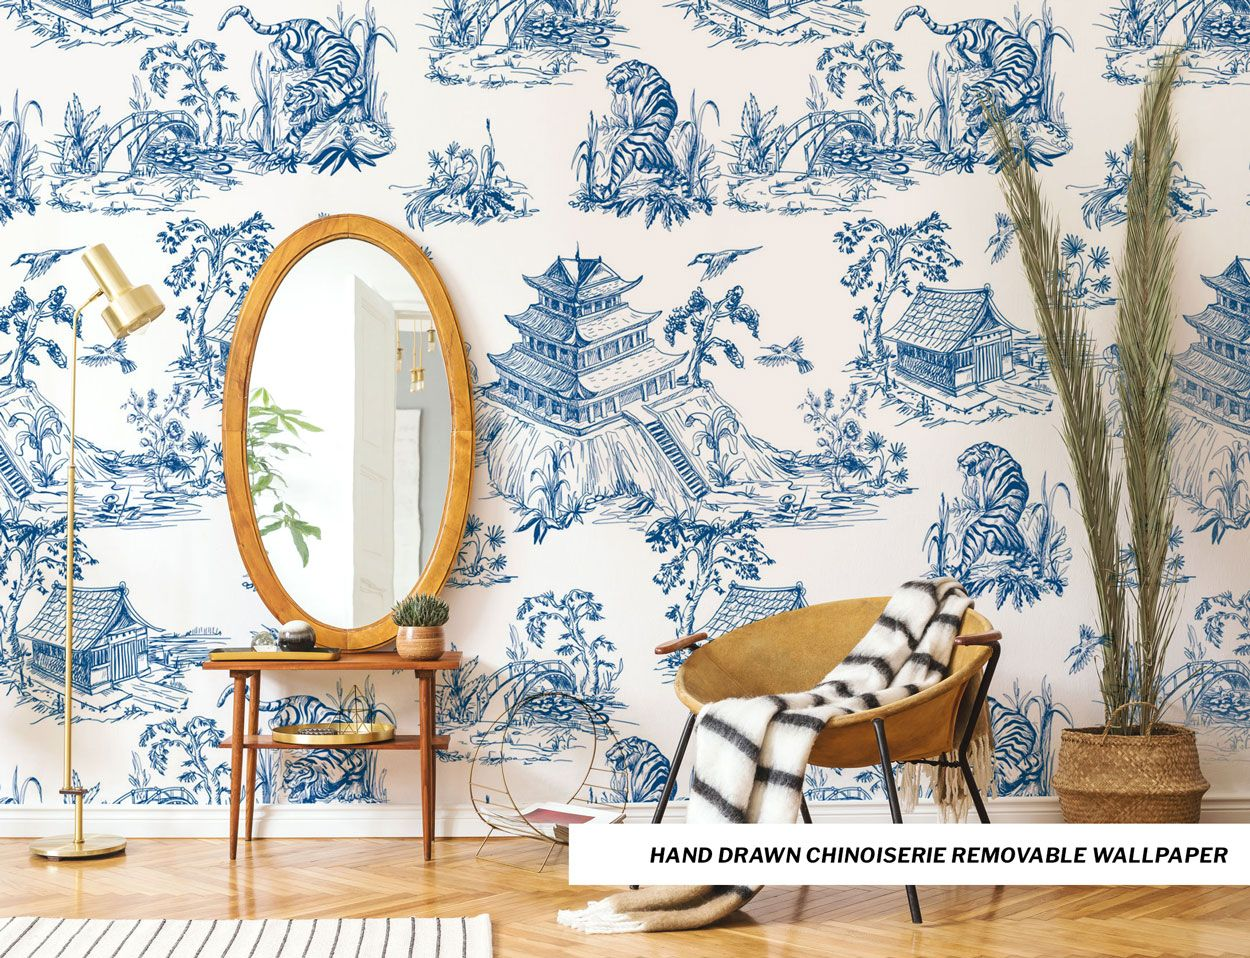 Featured Removable Wallpaper Hand Drawn Chinoiserie Removable Wallpaper Forest Wallpaper Wallpaper